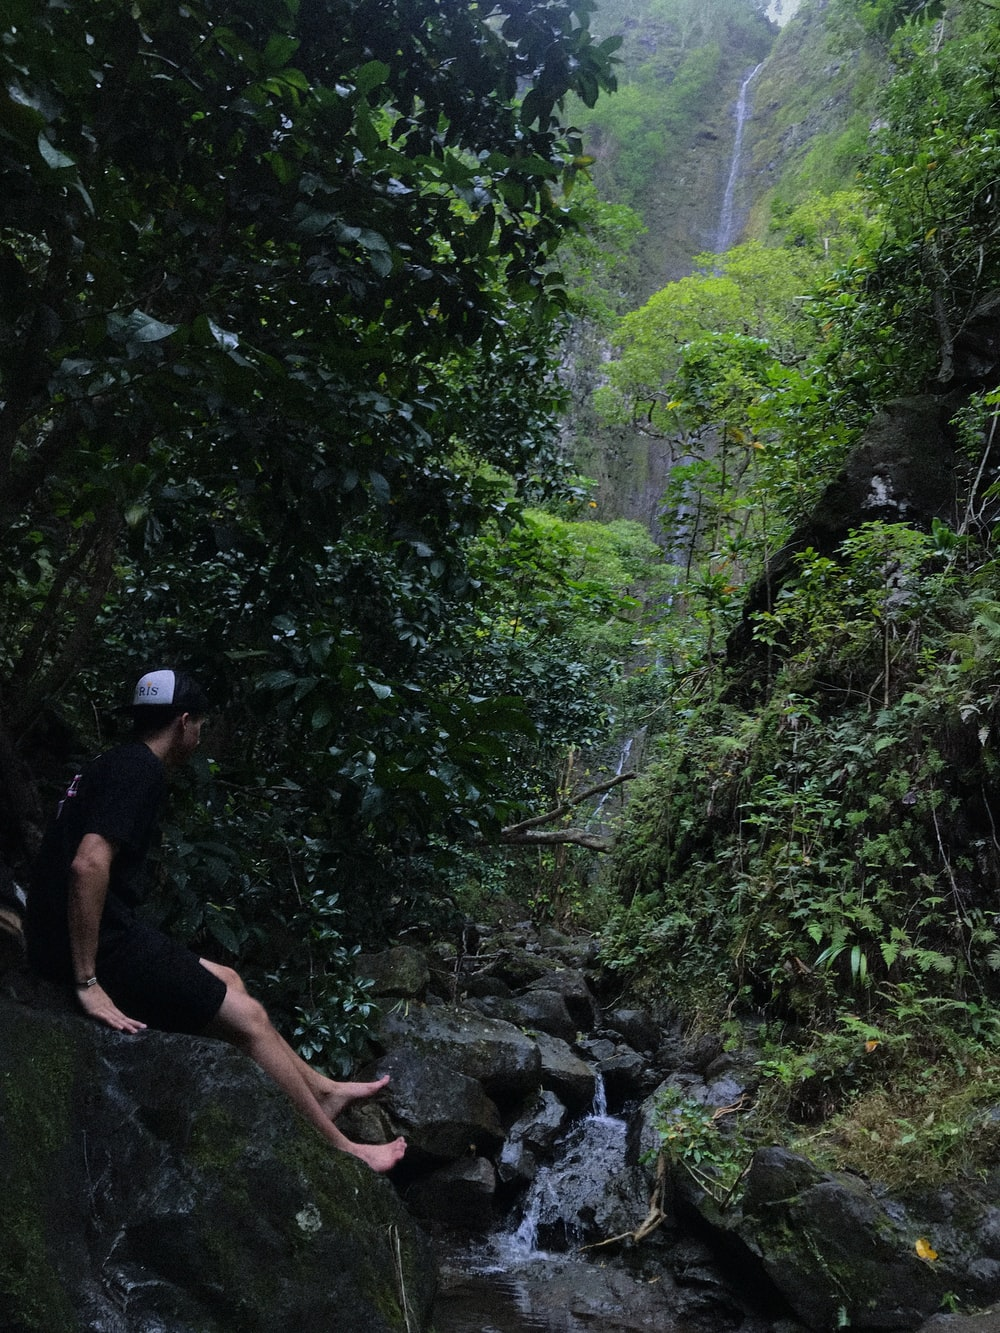 man sitting near waterfalls surrounded by plants